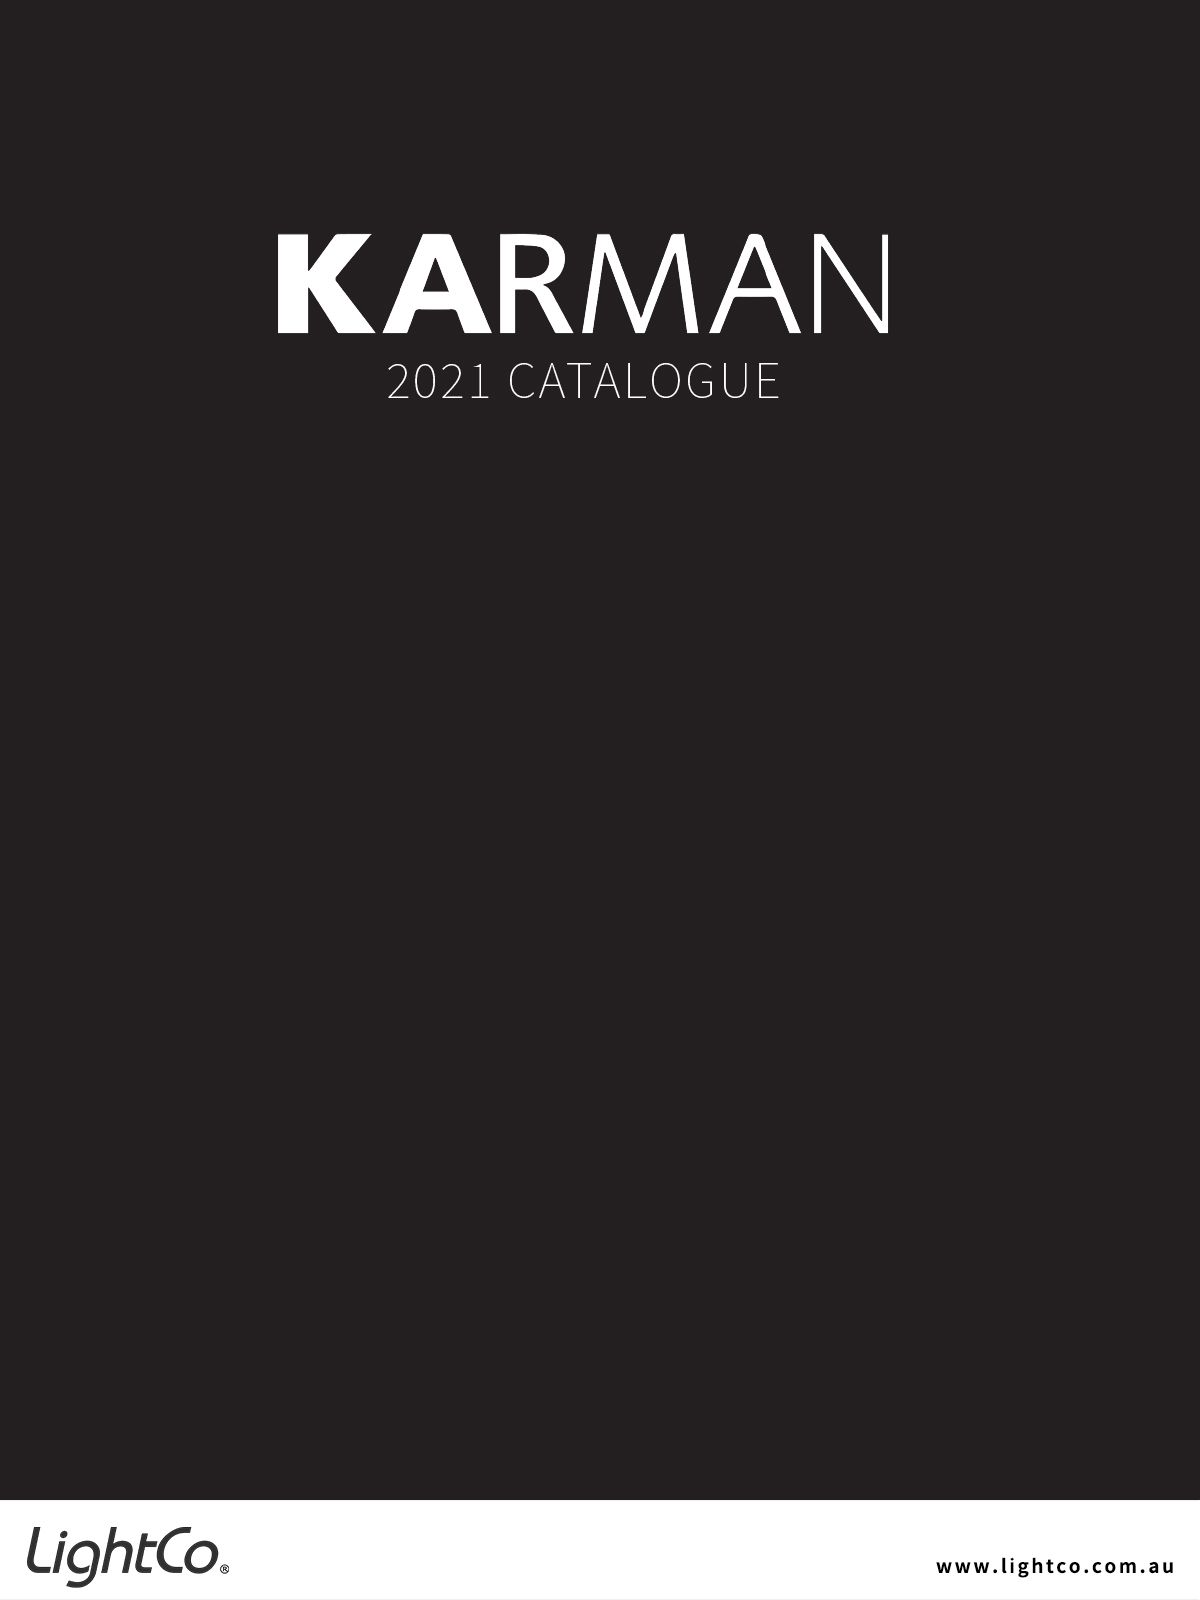 lightco-karman-catalogues-002